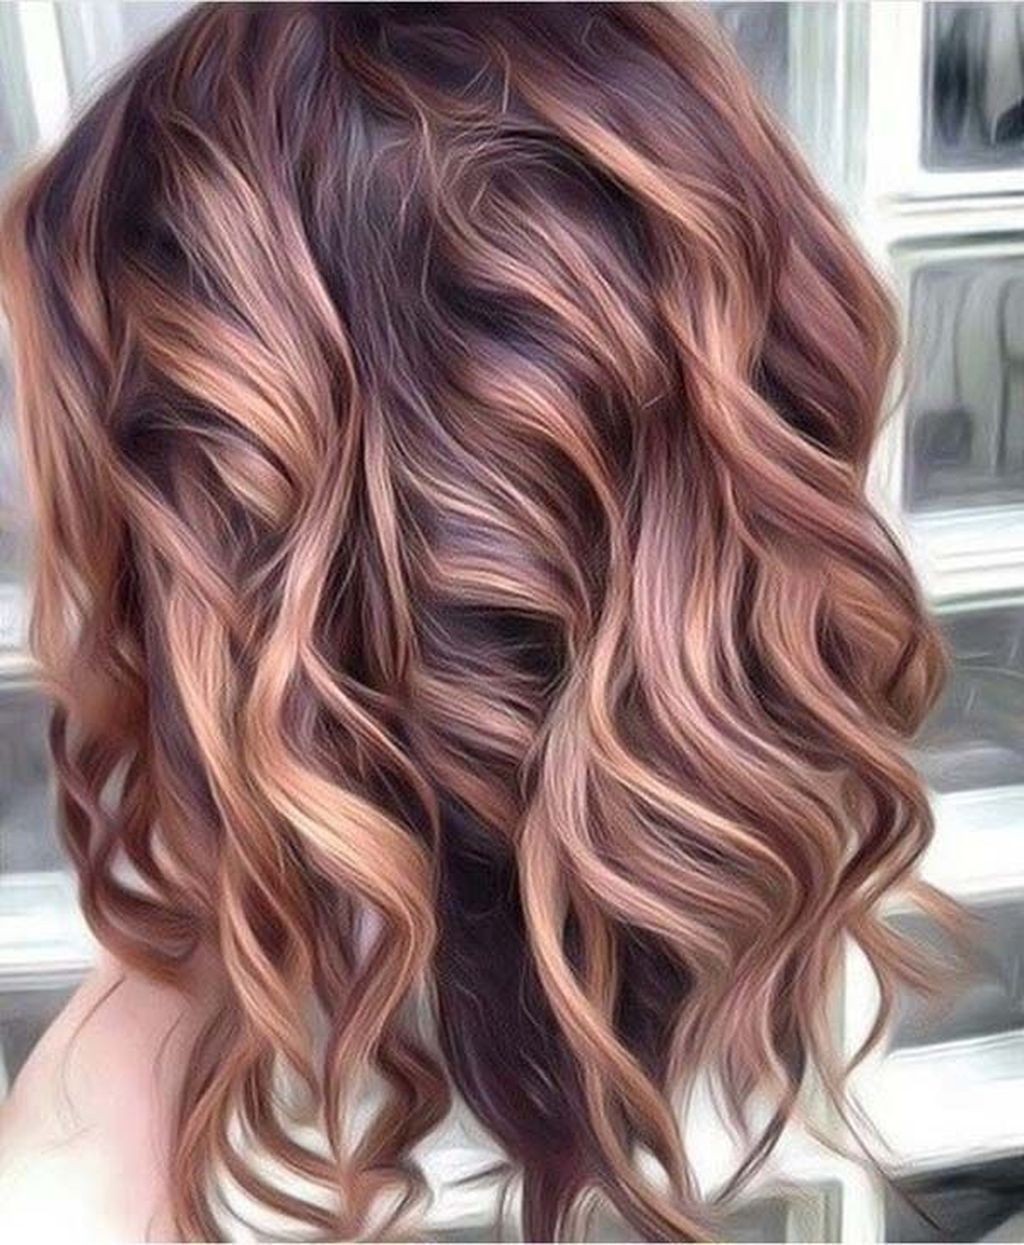 36 Perfect Fall Hair Colors Ideas For Women